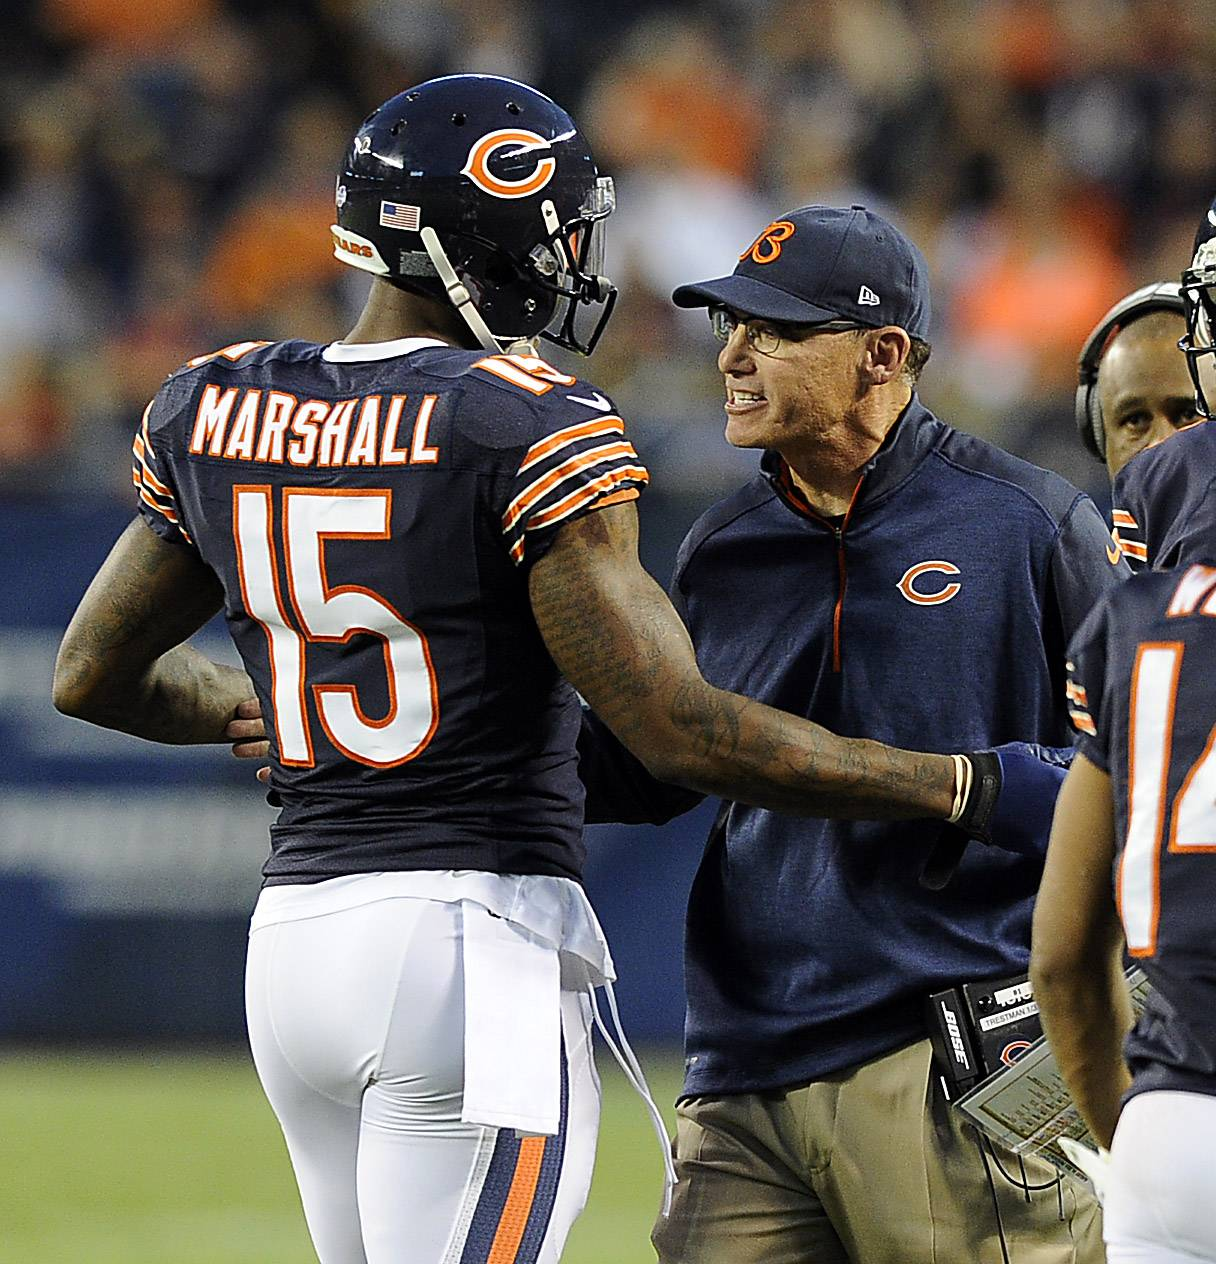 Bears head coach Marc Trestman was excited after Brandon Marshall scored a second-quarter touchdown on a pass from Jay Cutler.